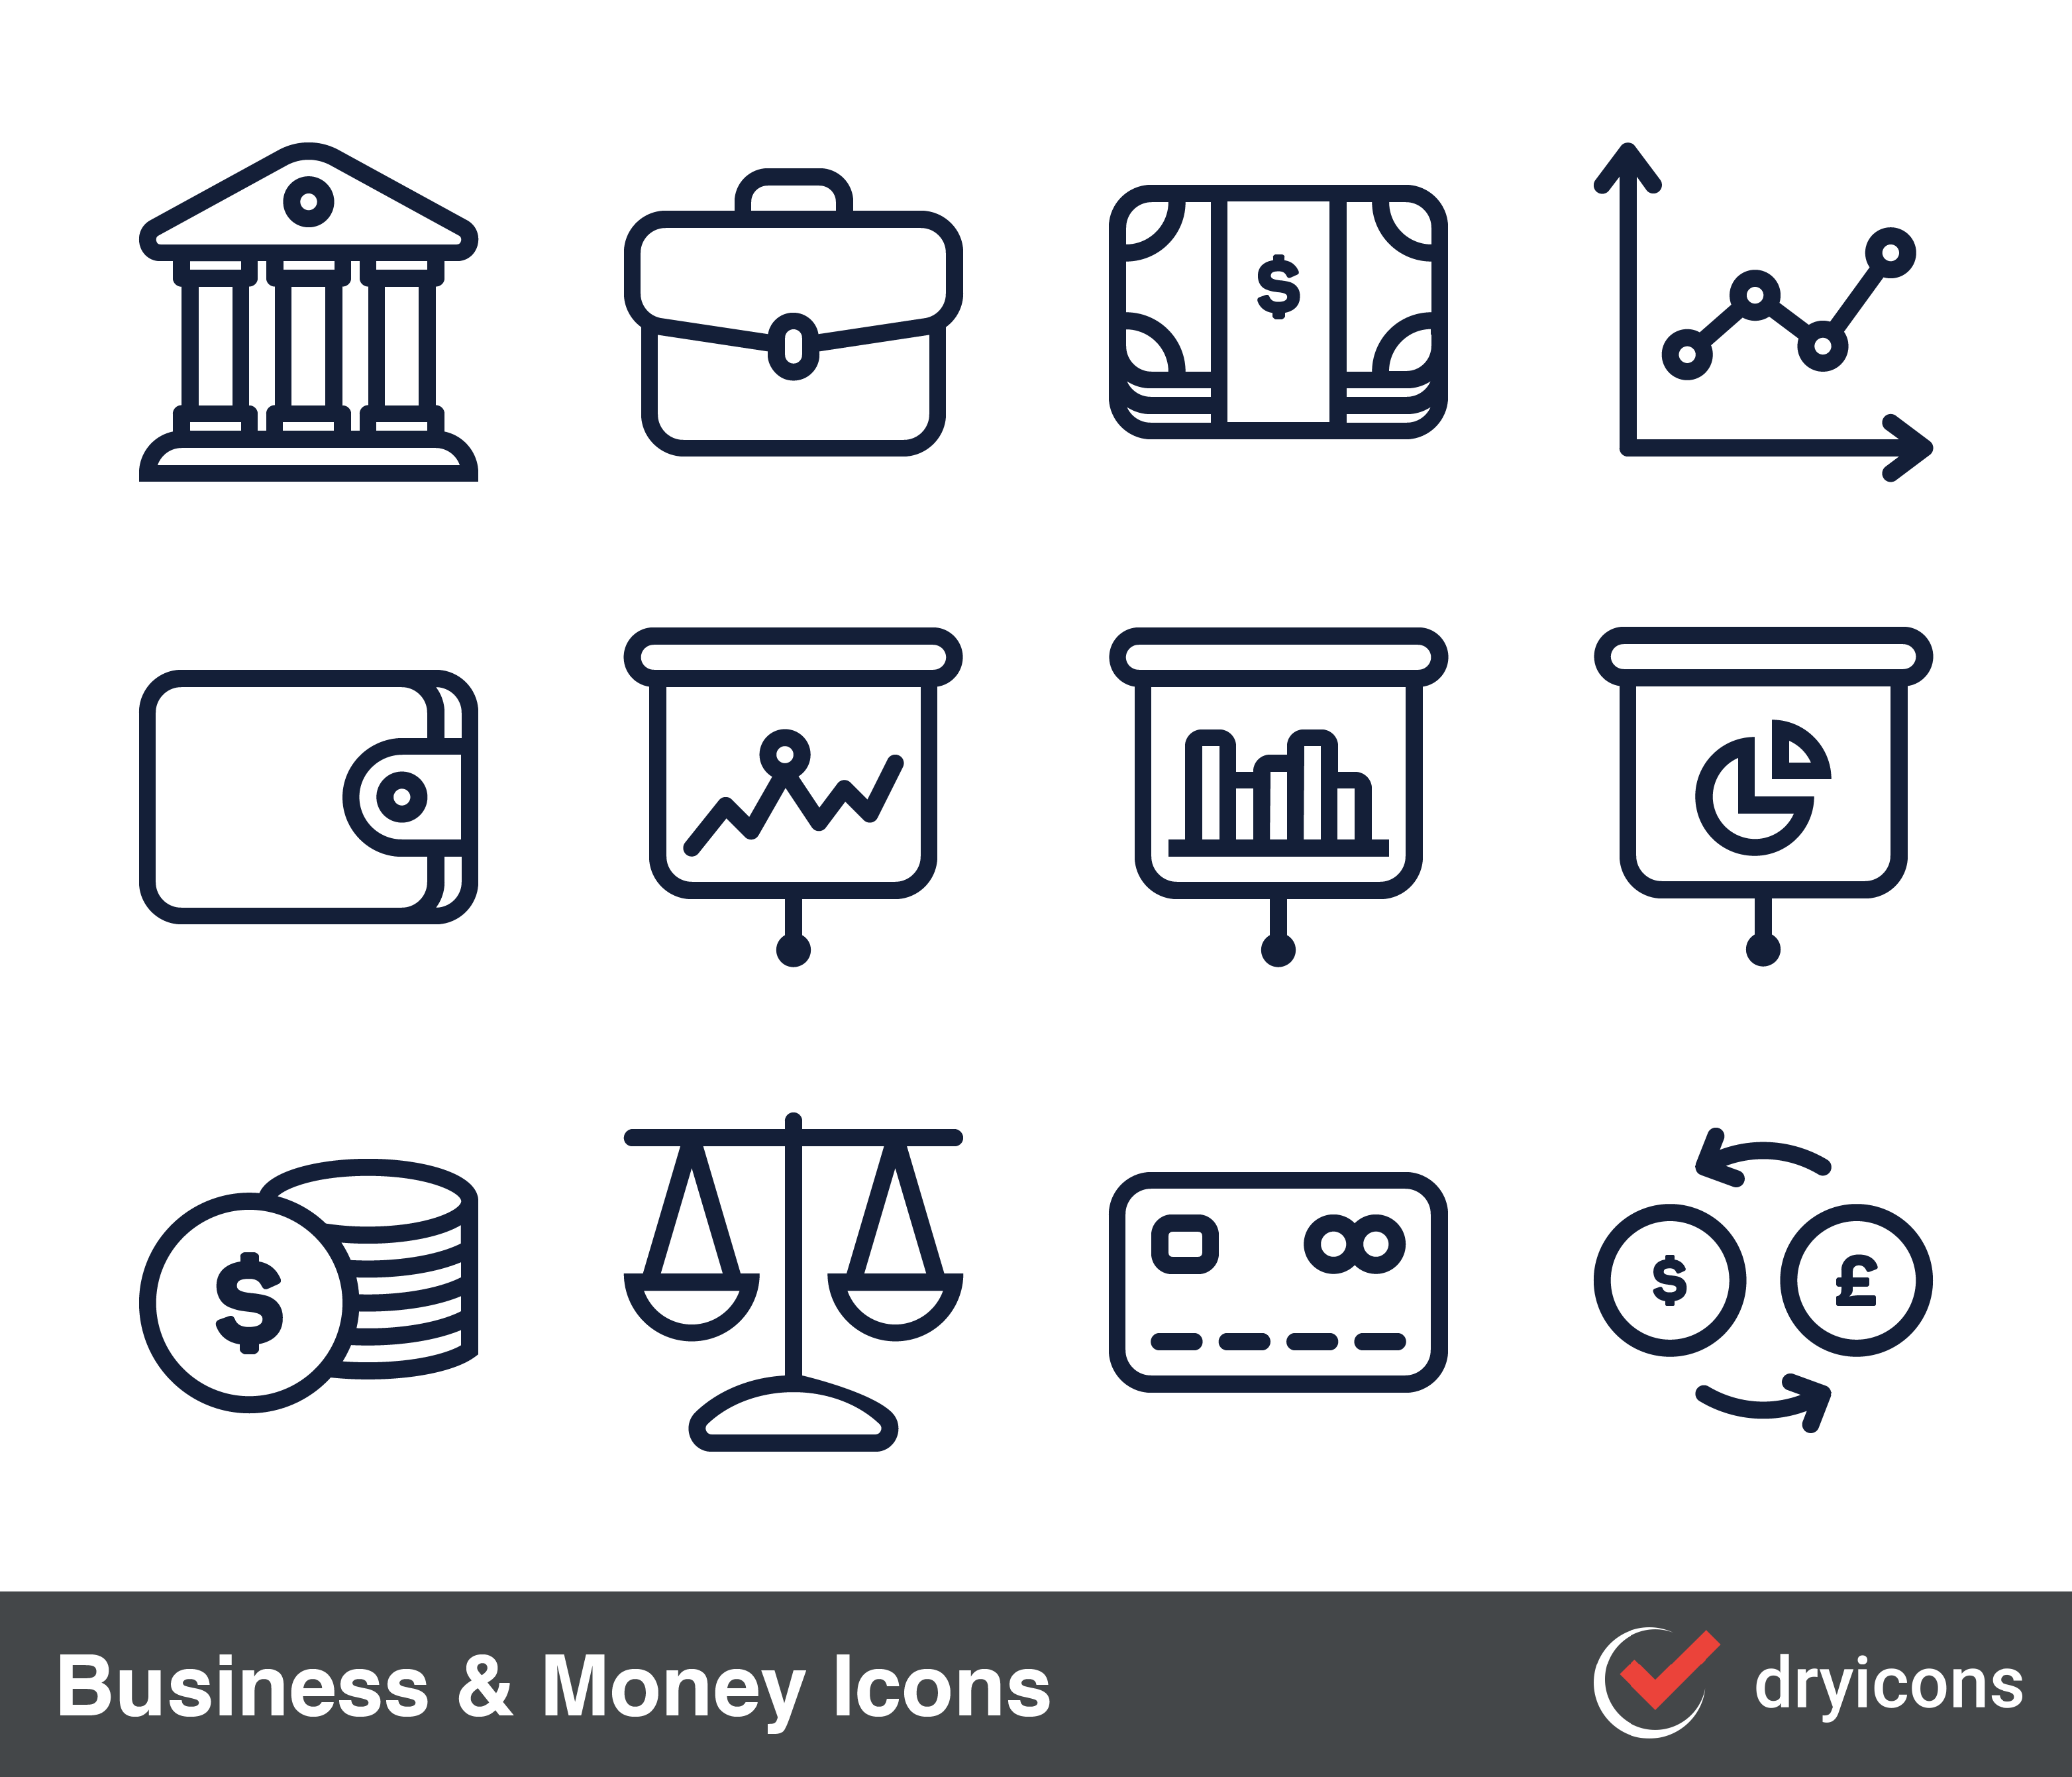 Study clipart modern study. Dryicons com icons and